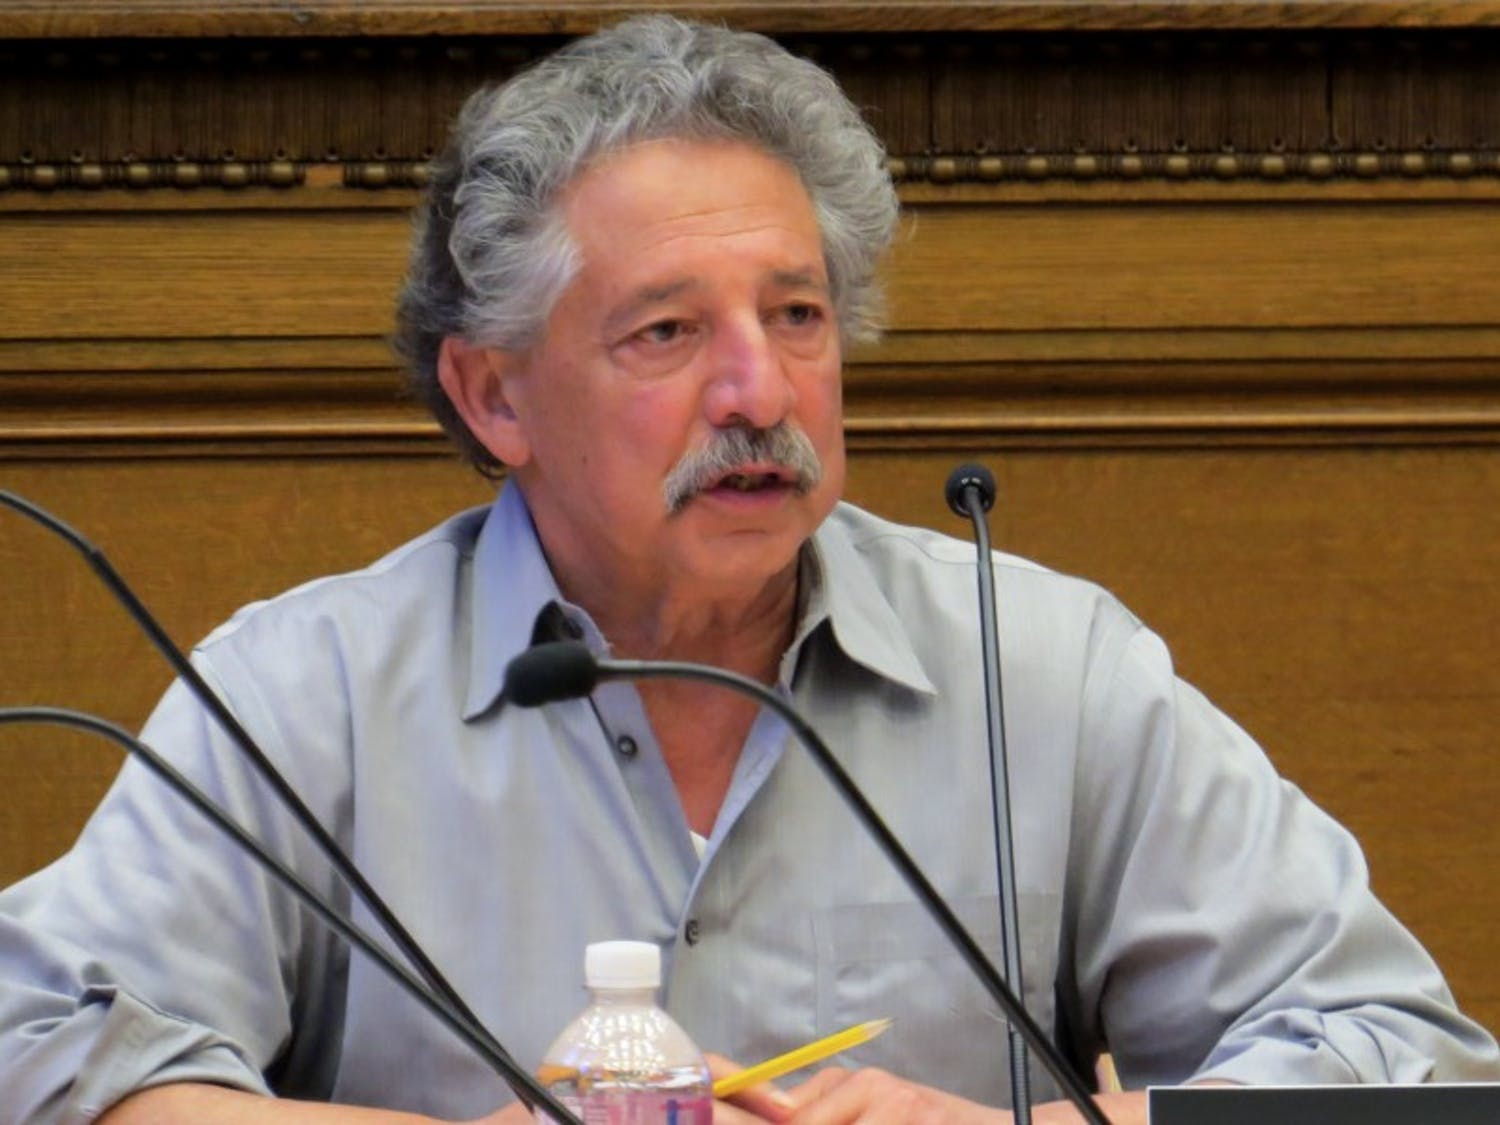 Mayor Paul Soglin joined municipal leaders across the country, challenging President Donald Trump's immigration ban through an amicus brief.